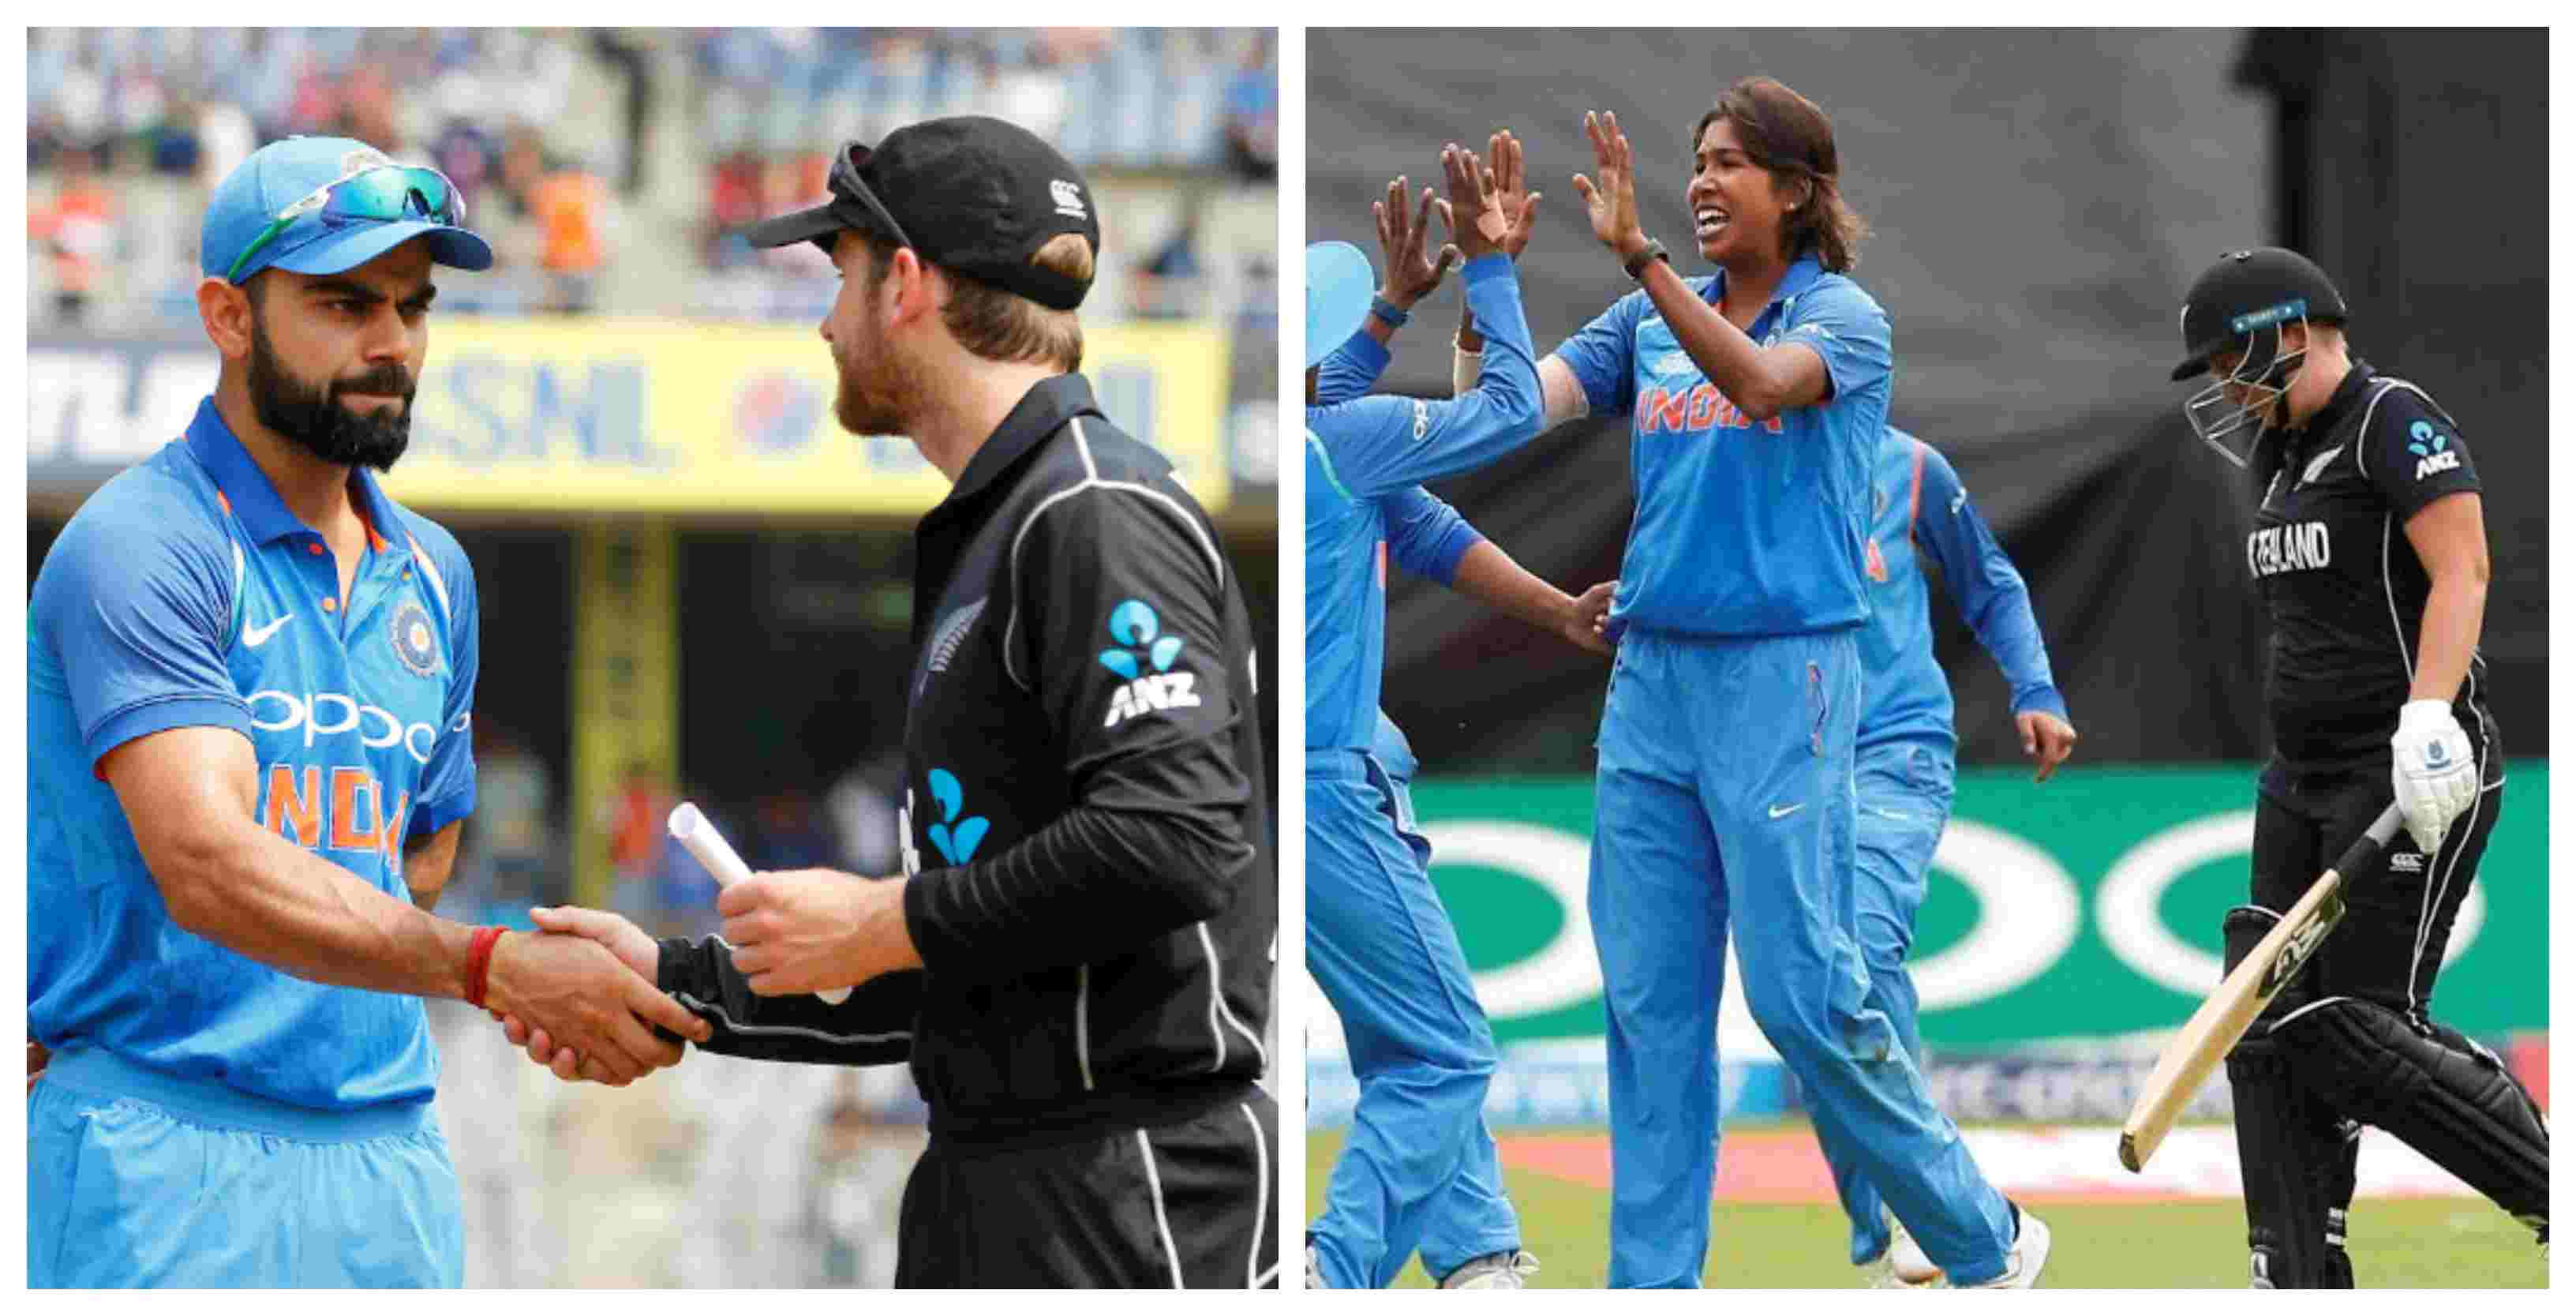 India's men and women's team will mark the start of their next year's cricket calendar by touring New Zealand